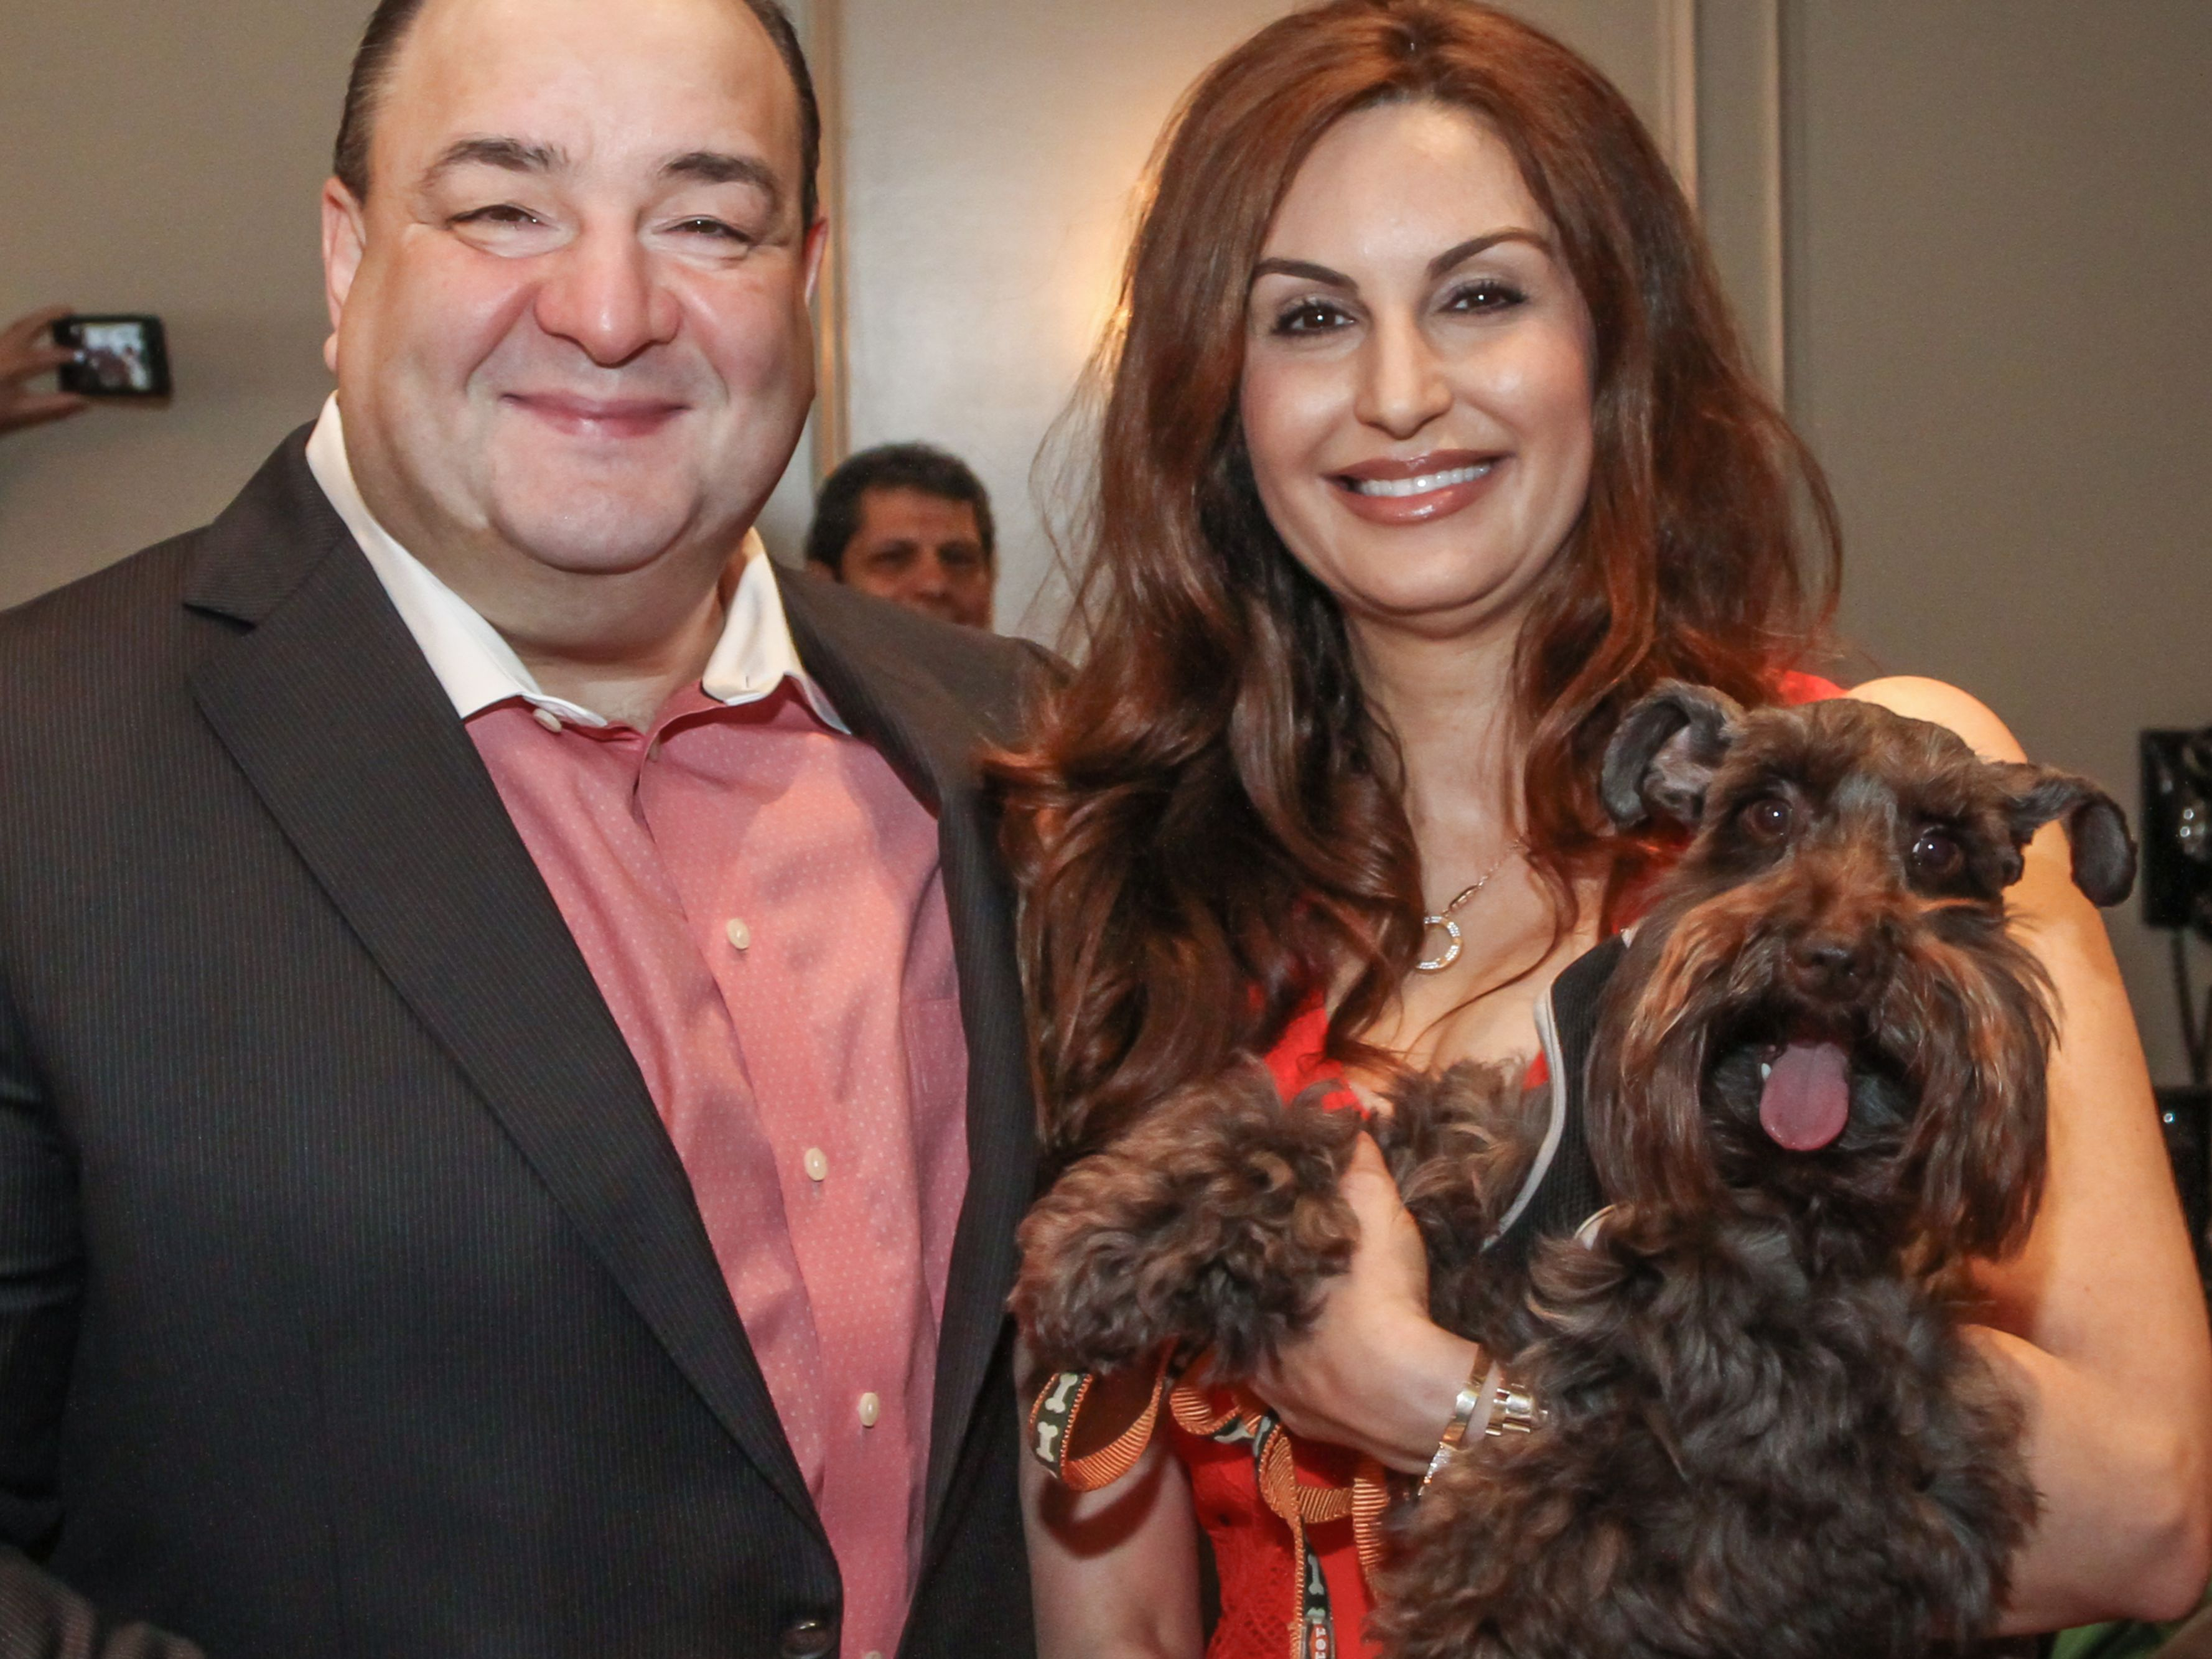 Bashar and brigitte kalai with max gvbz63